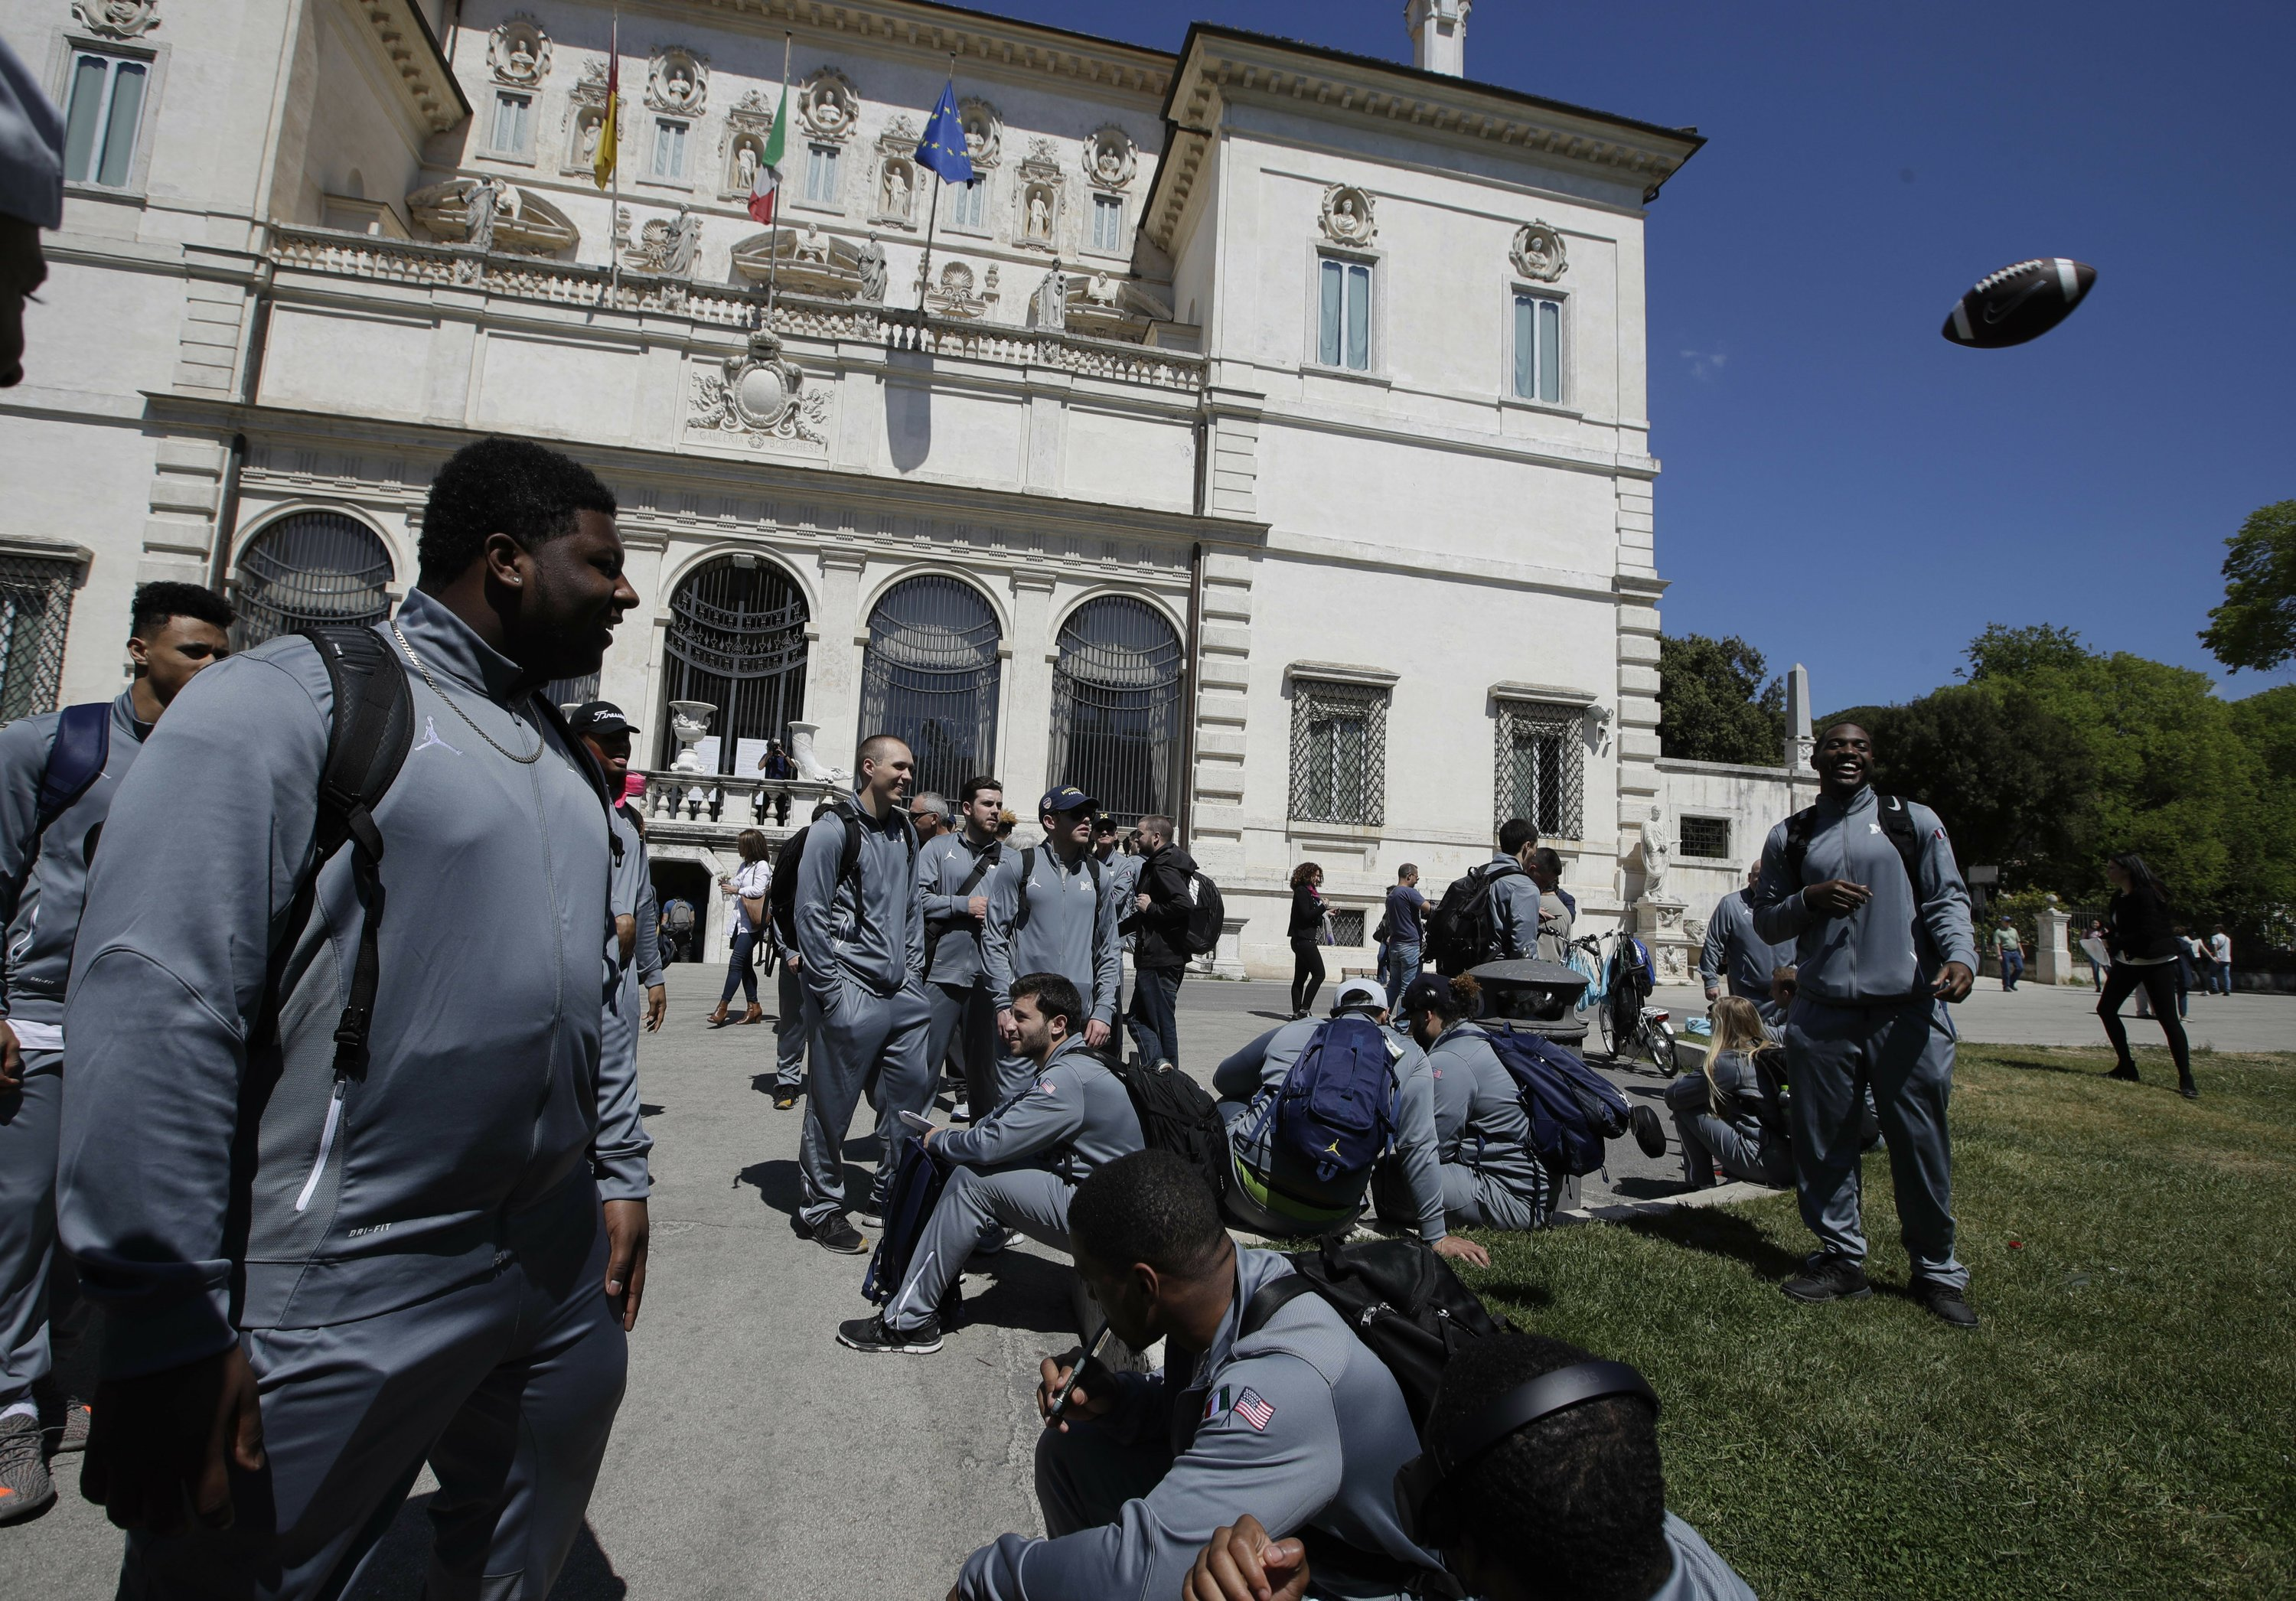 Michigan football team arrives in Italy